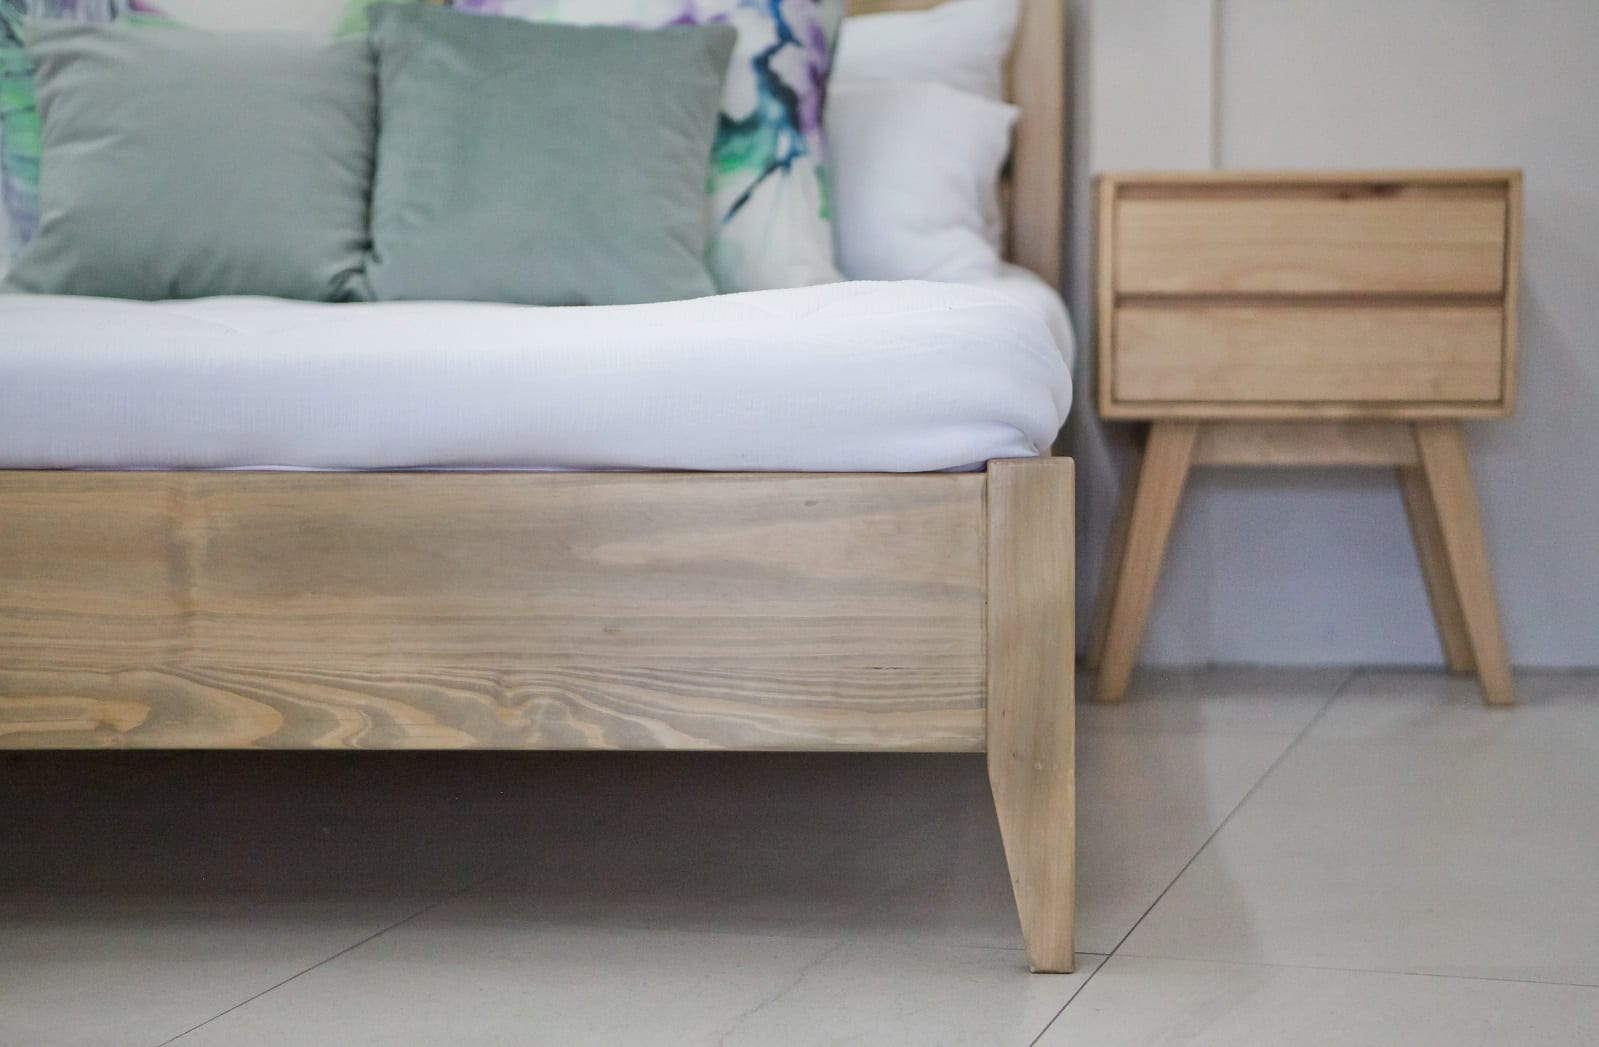 Bedroom Furniture Tapered Wood Double Bed with Headboard beds